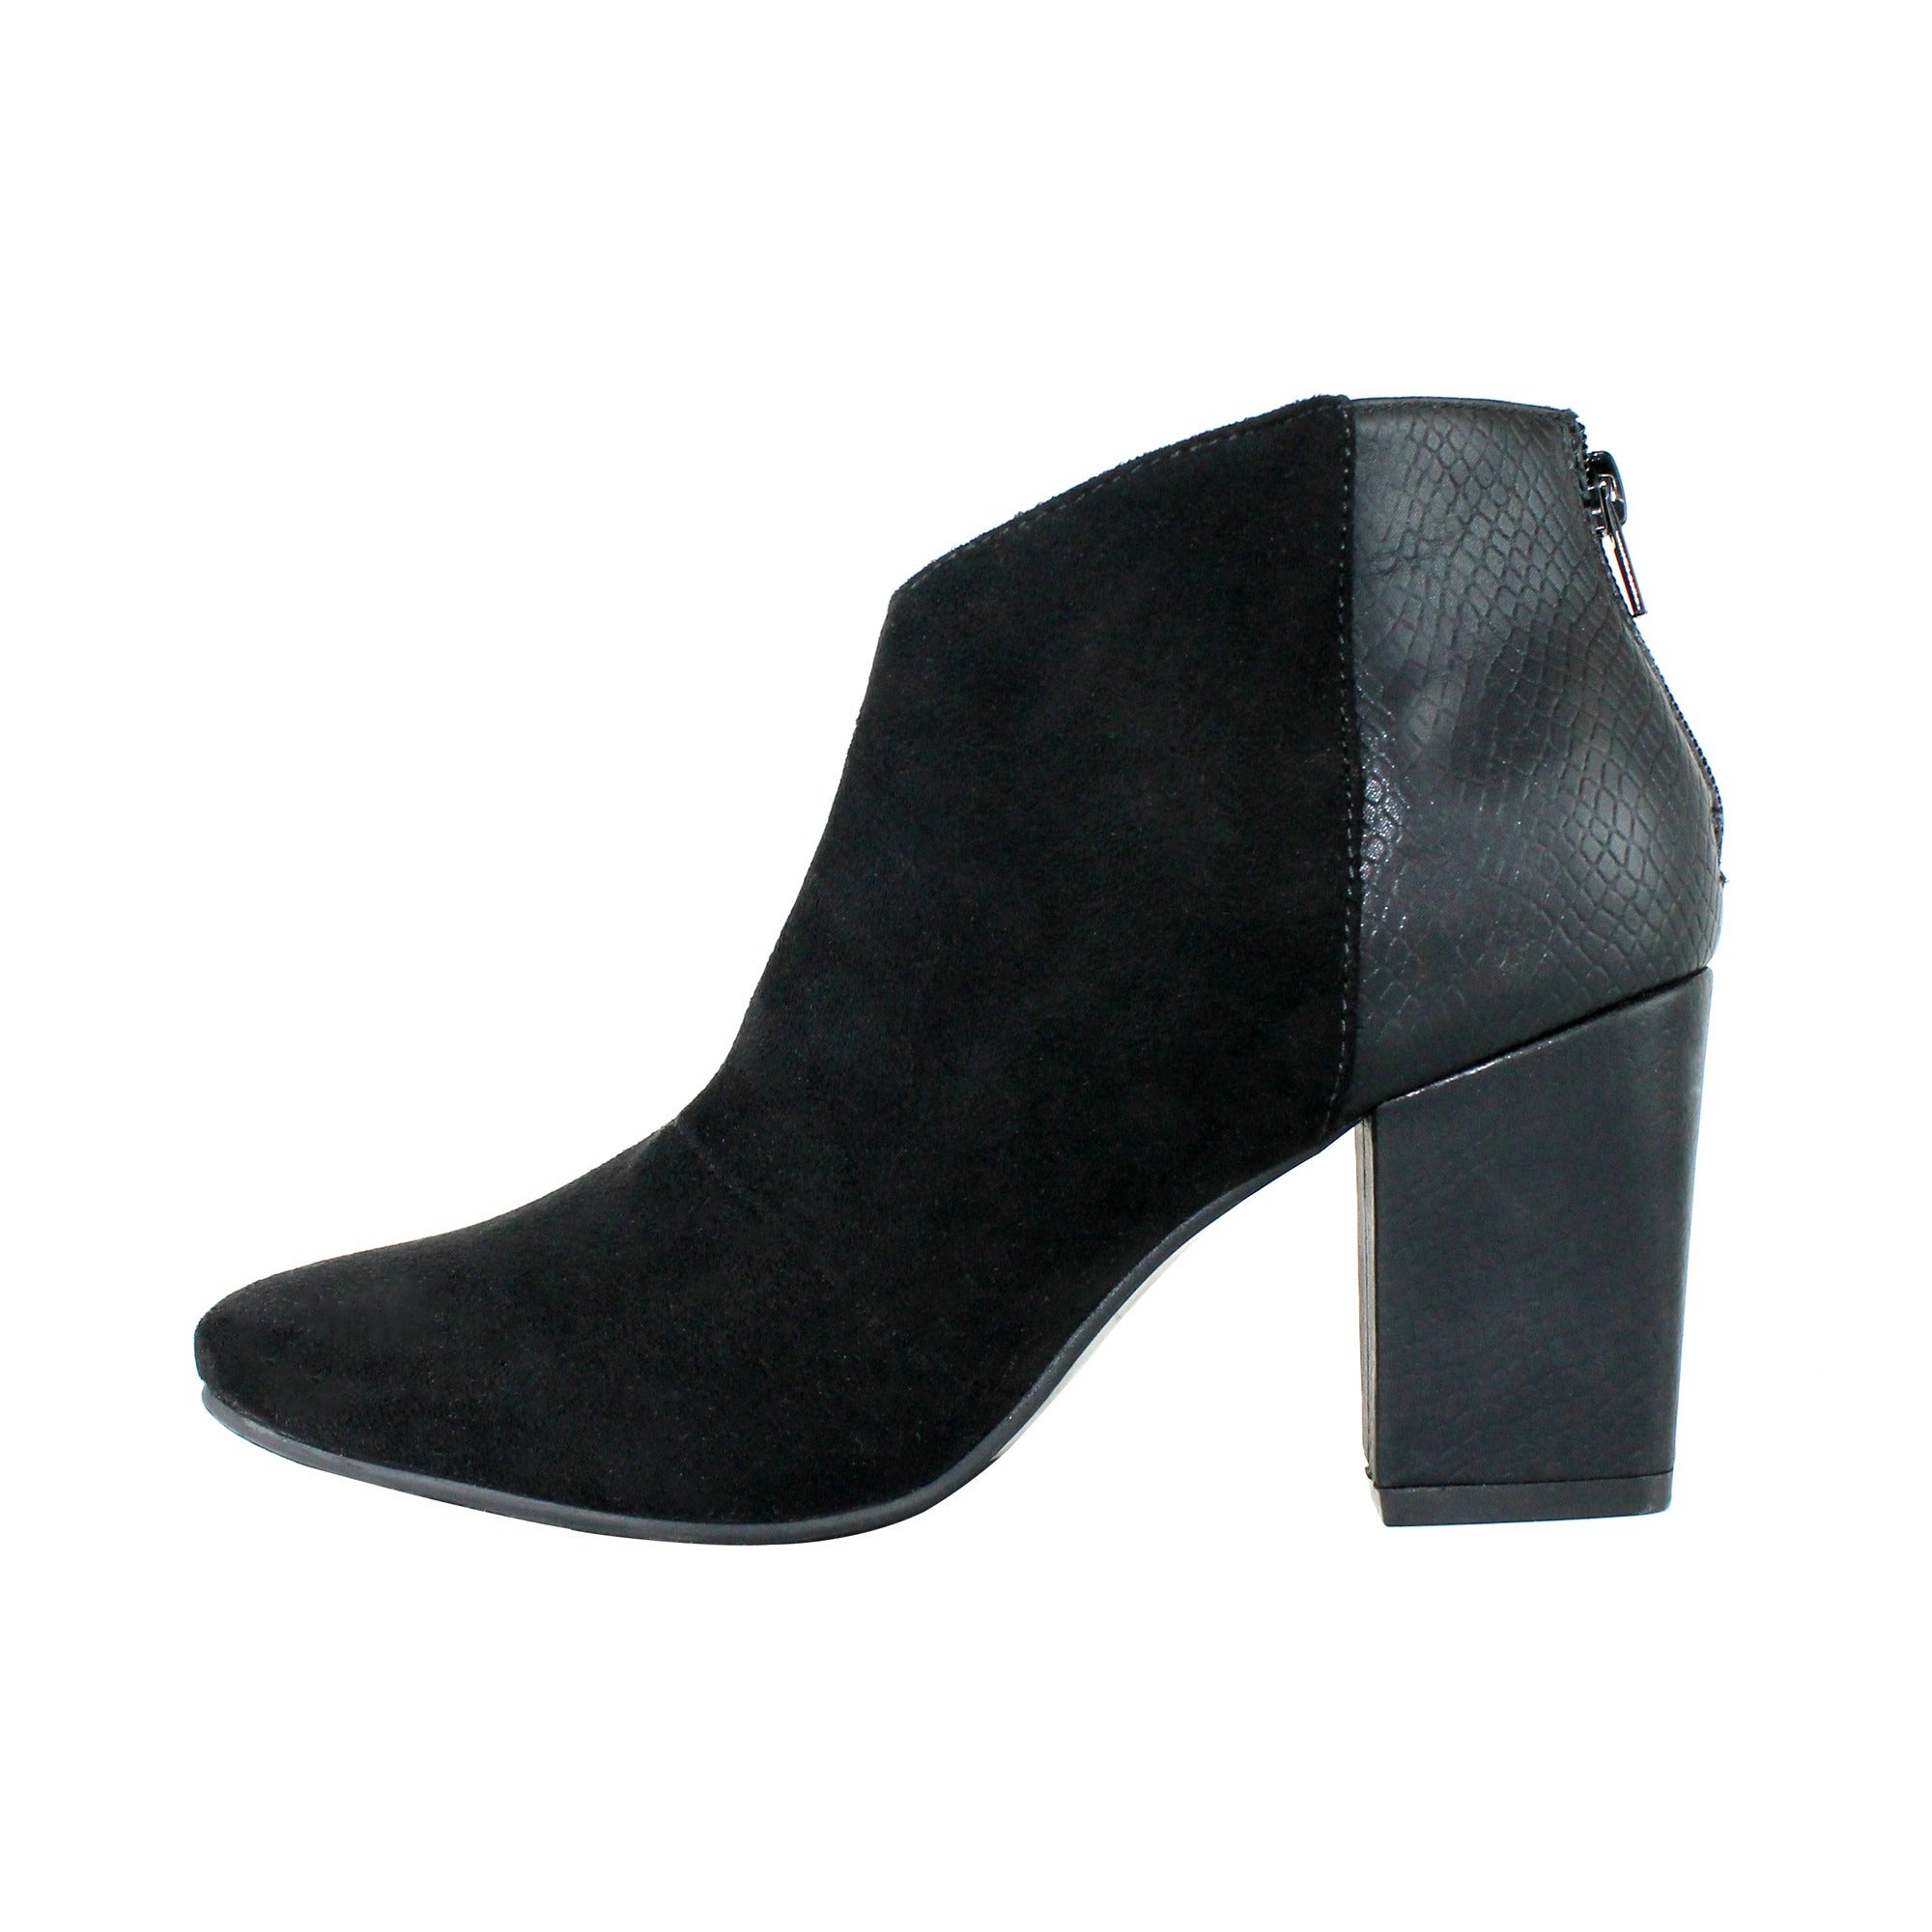 Olivia Miller Jillian Women's ... Ankle Boots clearance good selling oknlurpQ